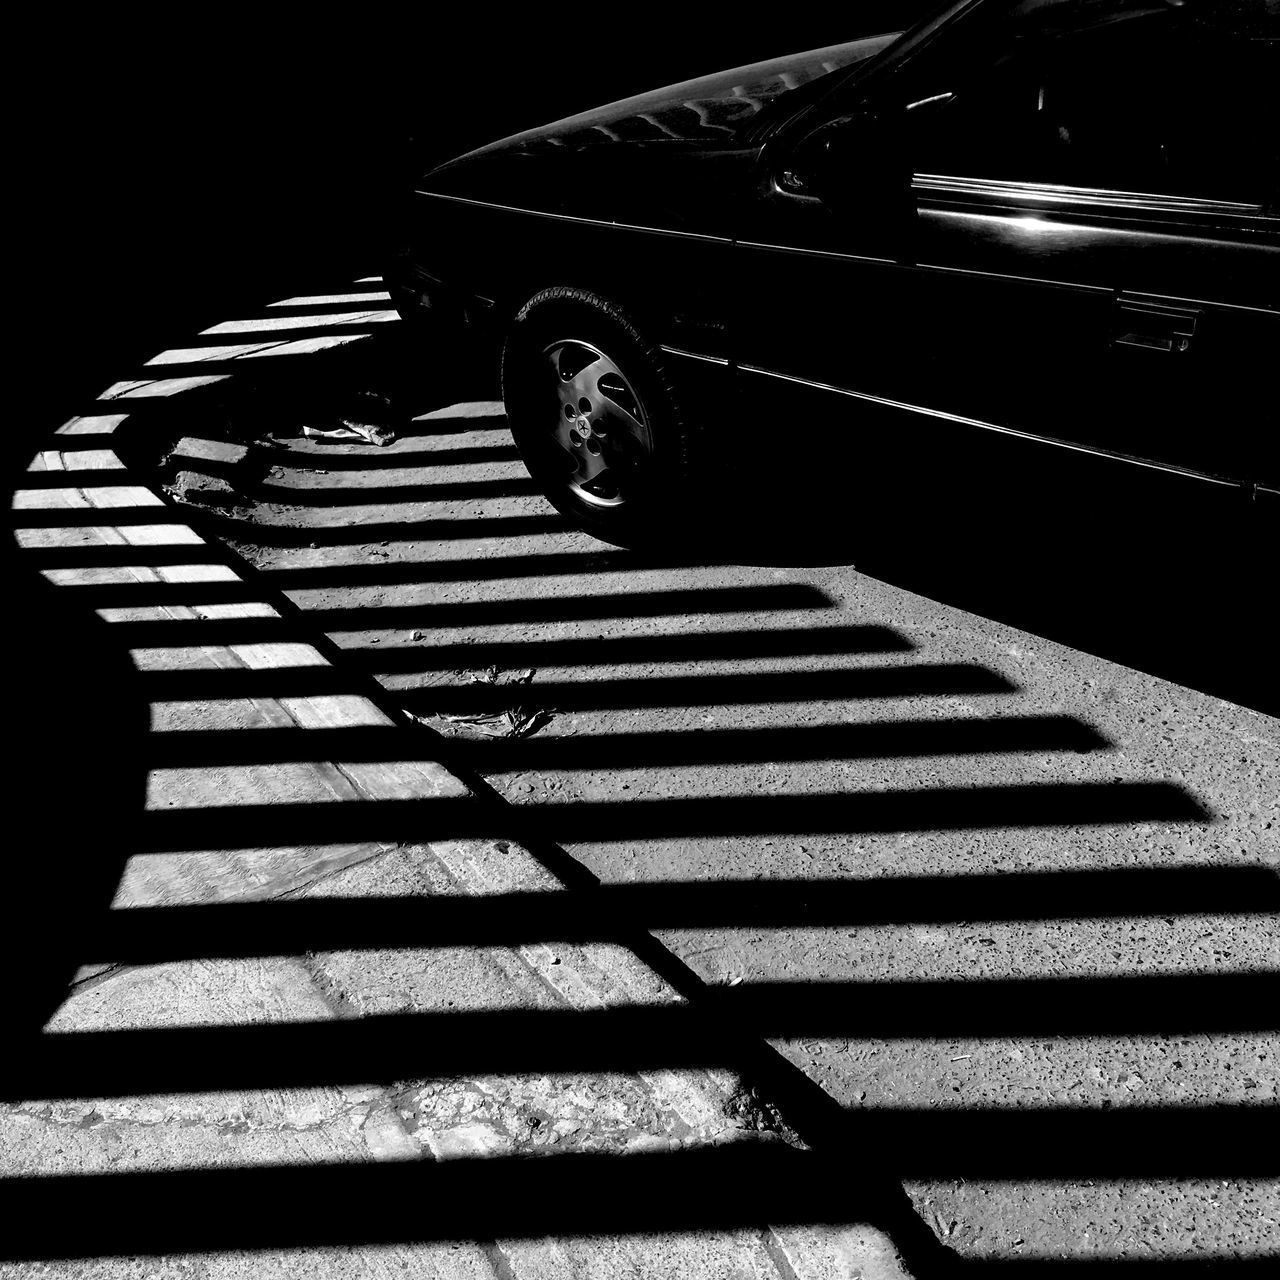 The City Light Shadow EyeEm Best Shots - Black + White